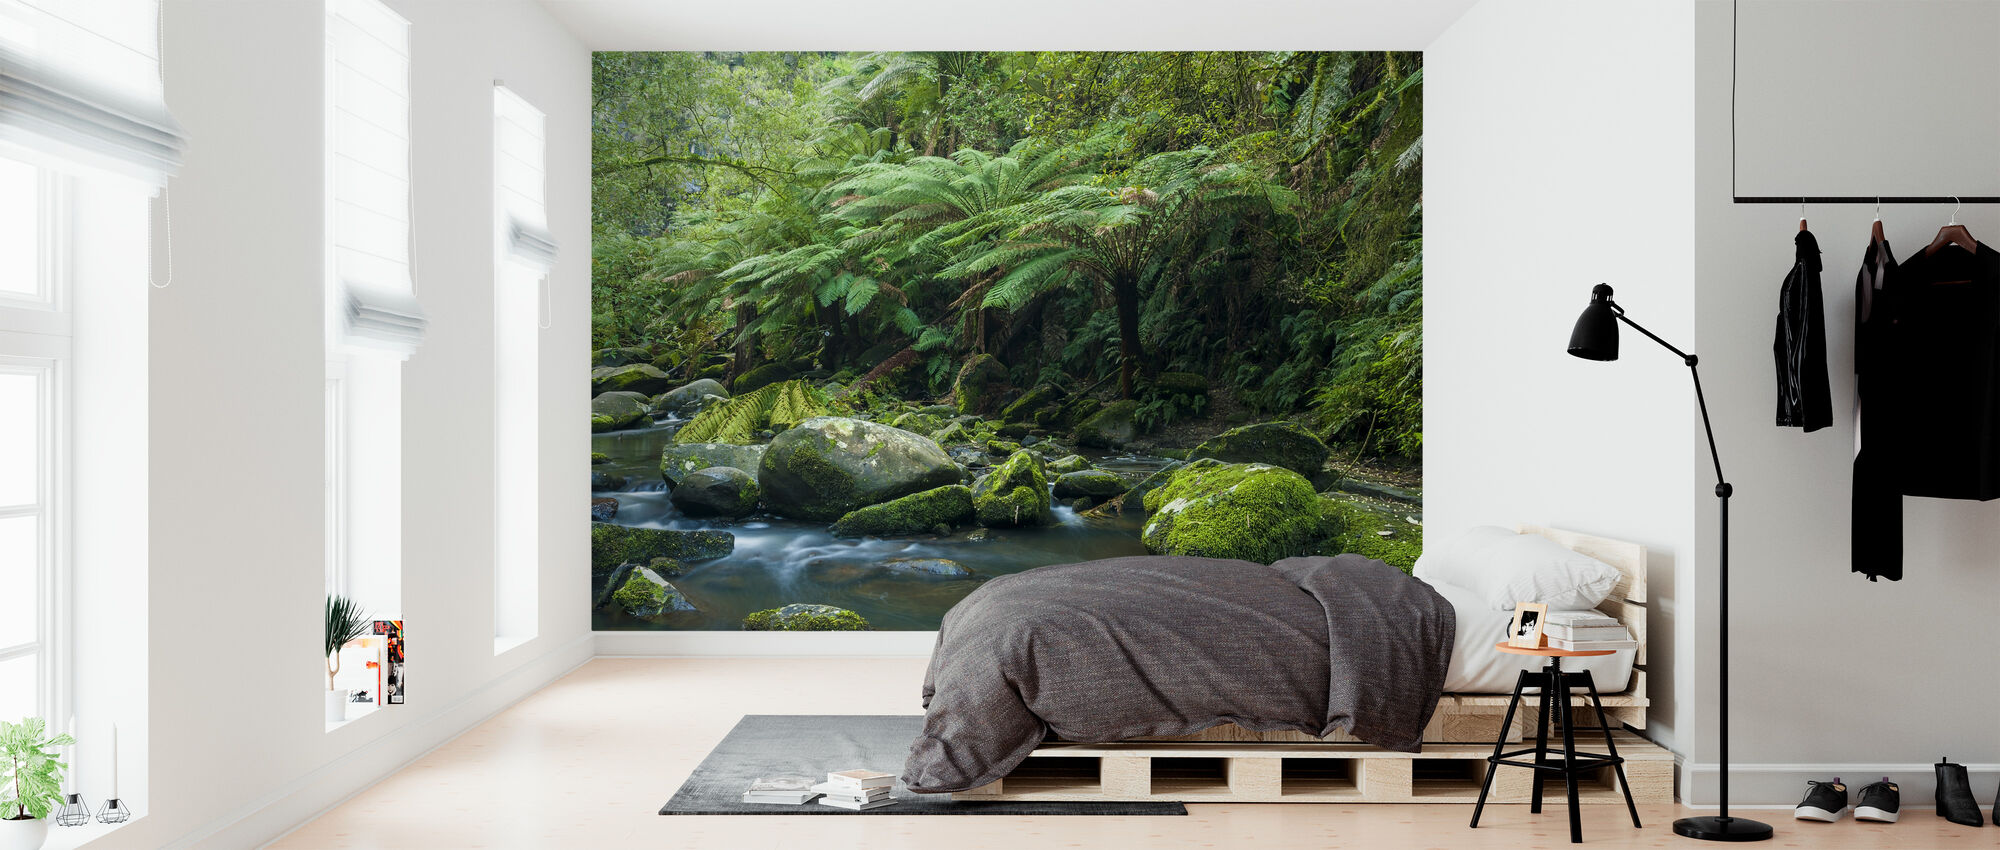 Great Otway National Park - Wallpaper - Bedroom